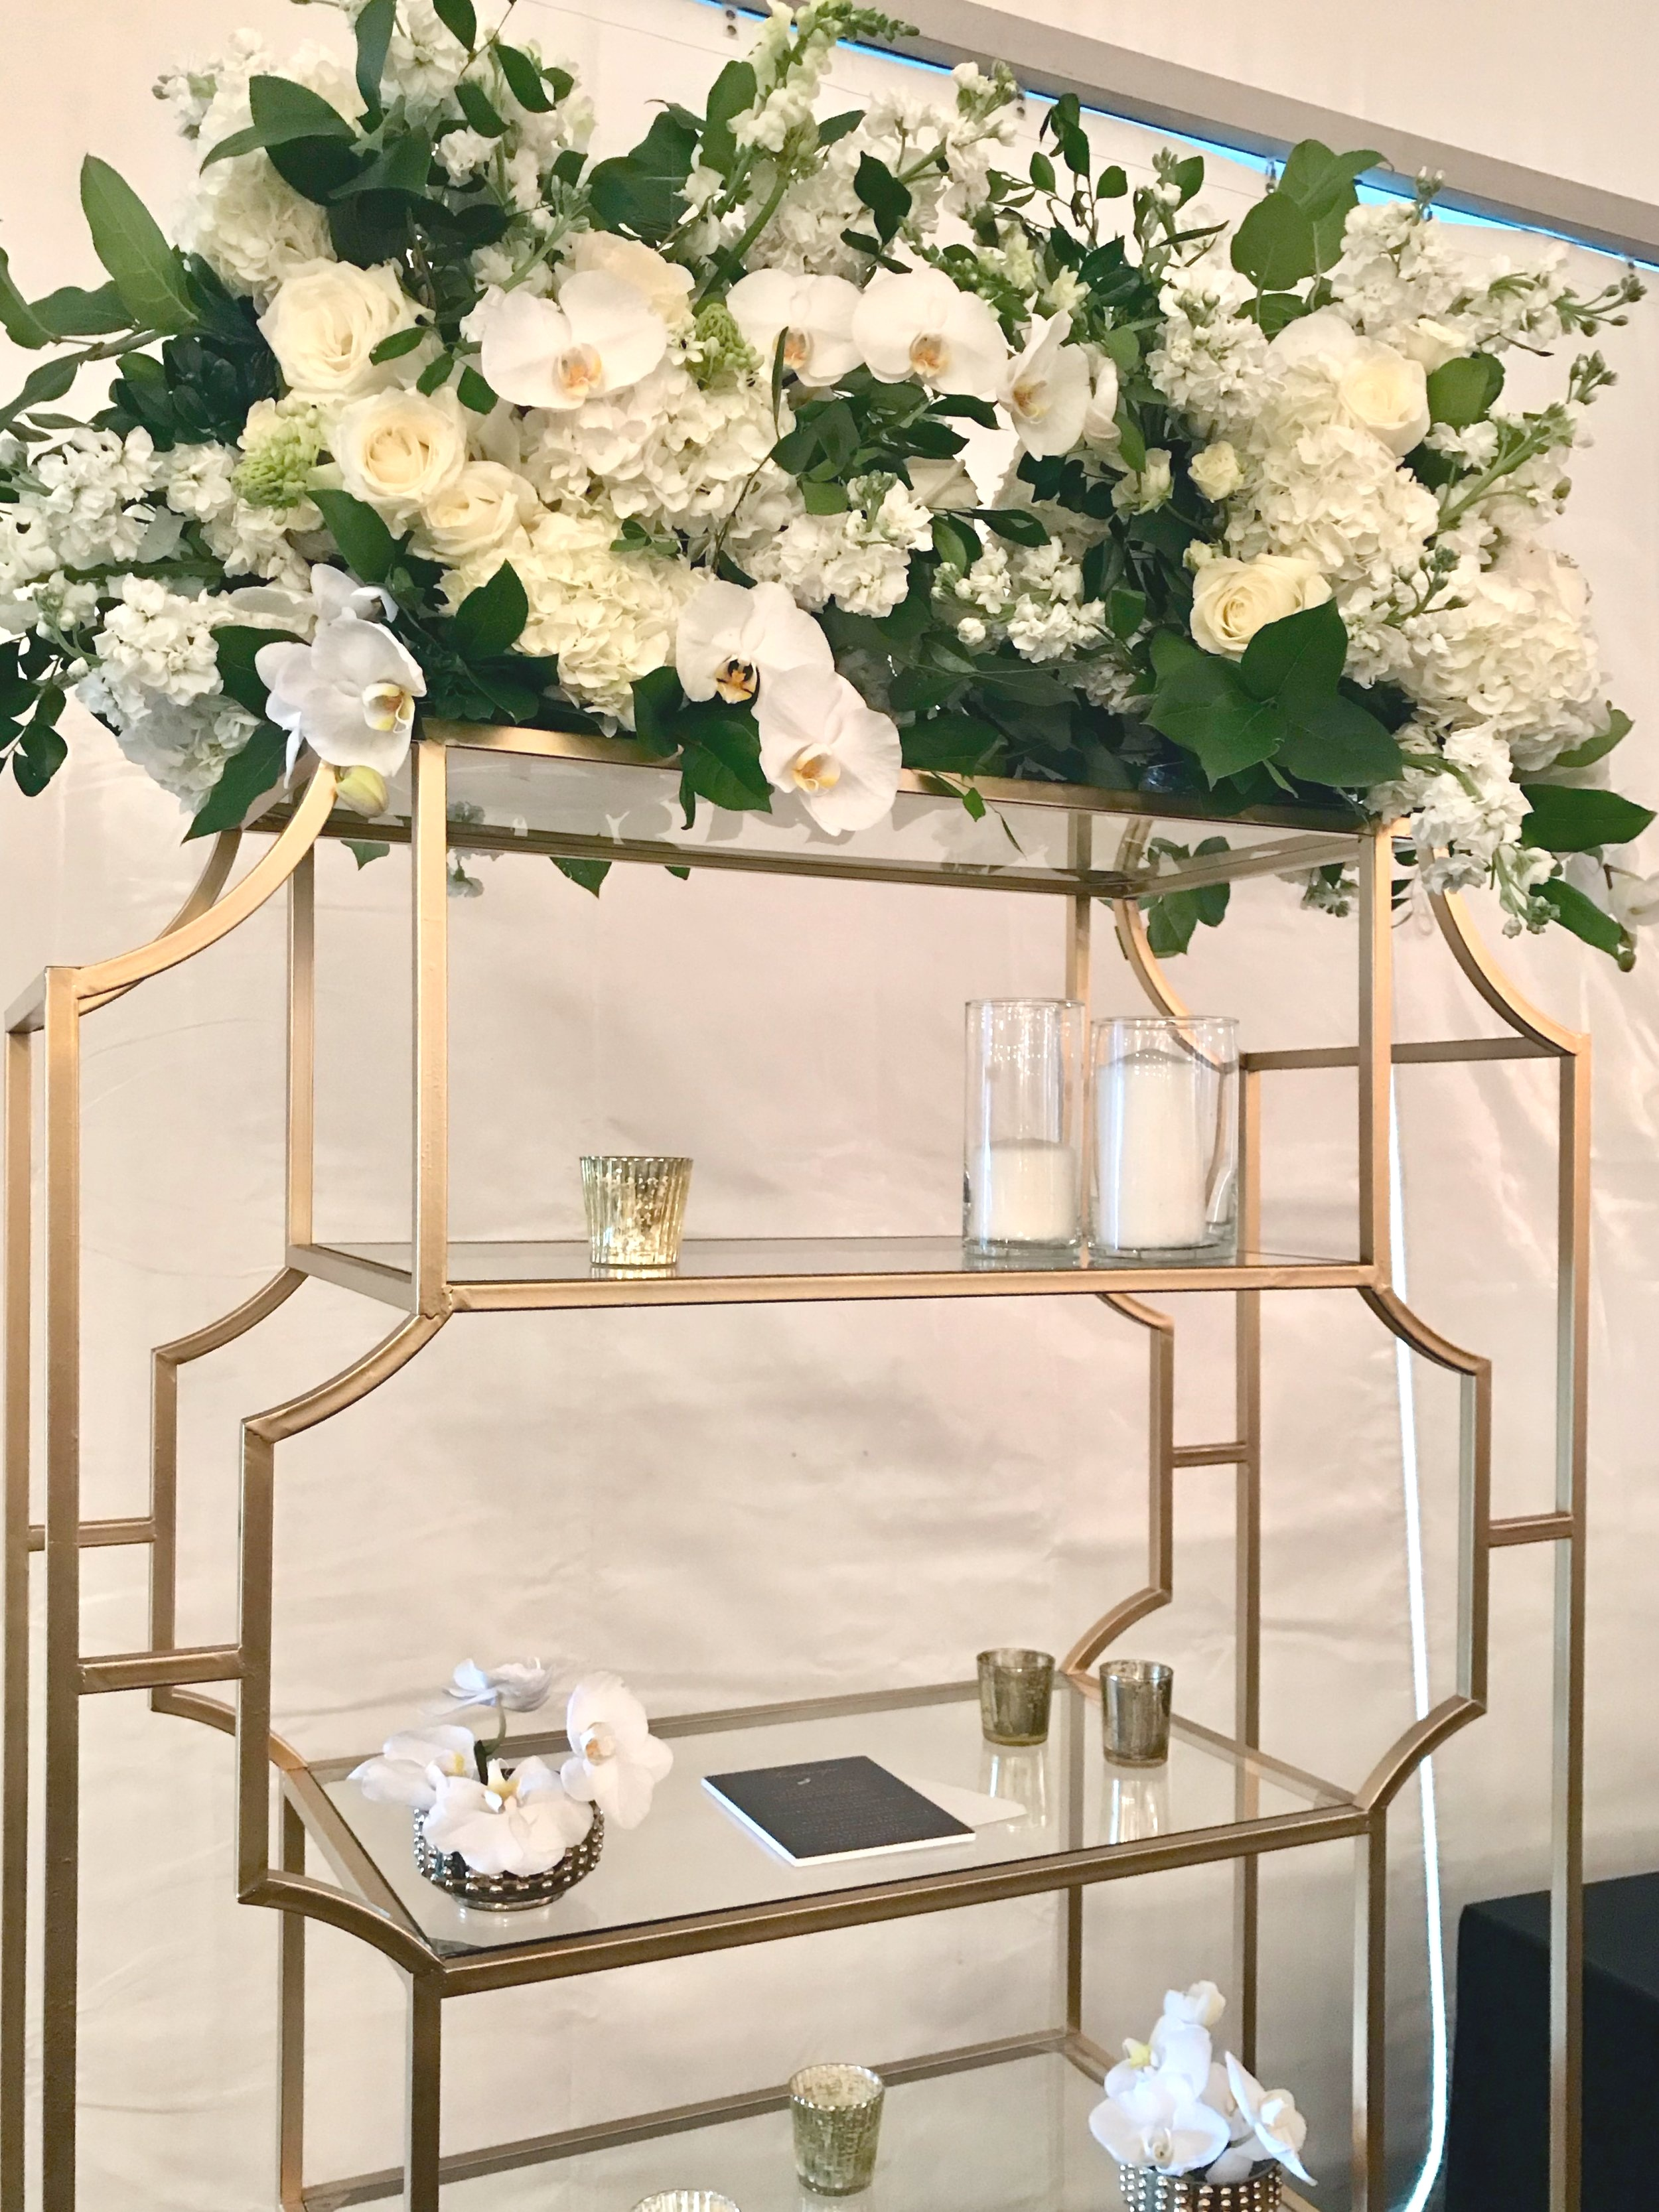 Green+and+white+floral+display+for+wedding+reception+by+Yellow+Canary